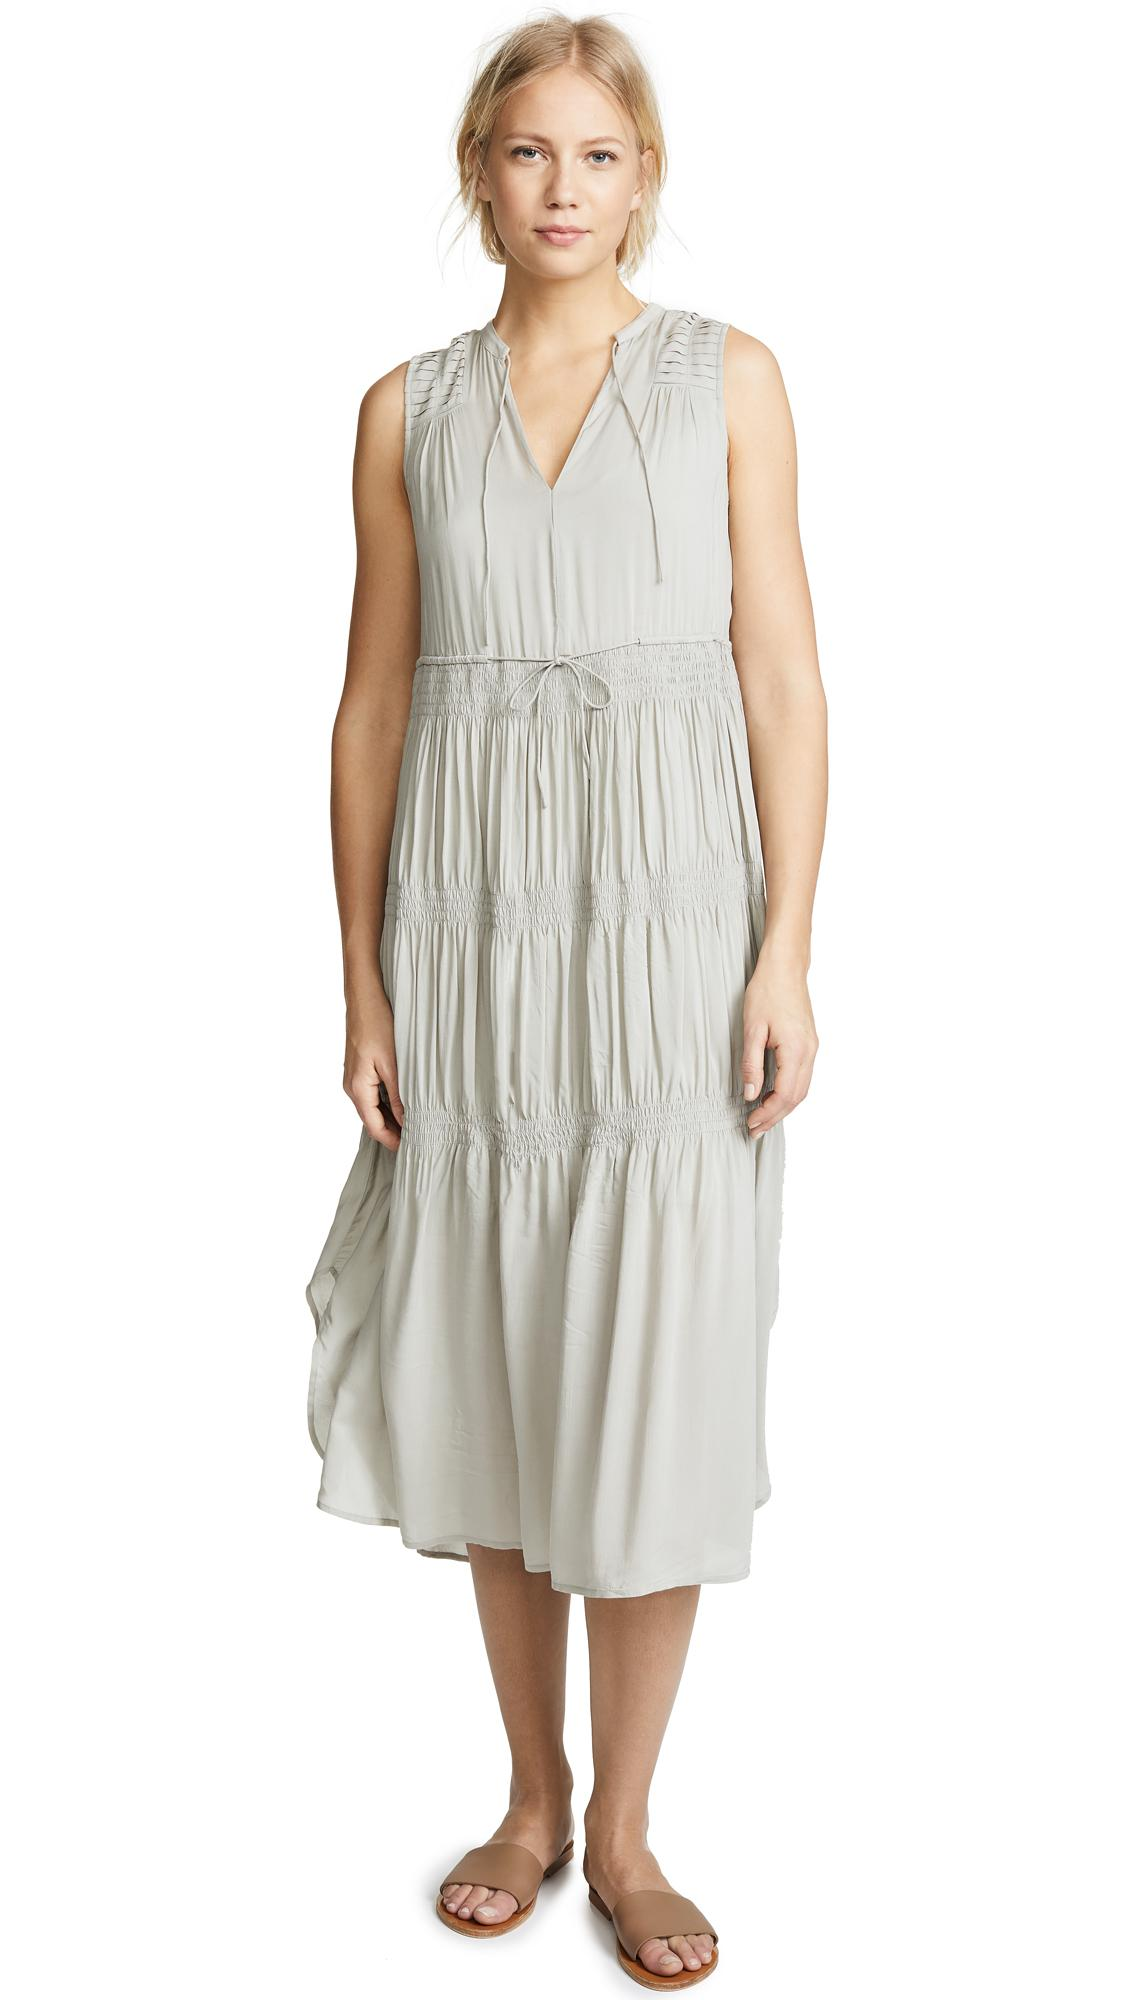 James Perse Pleated Dress In Solitaire